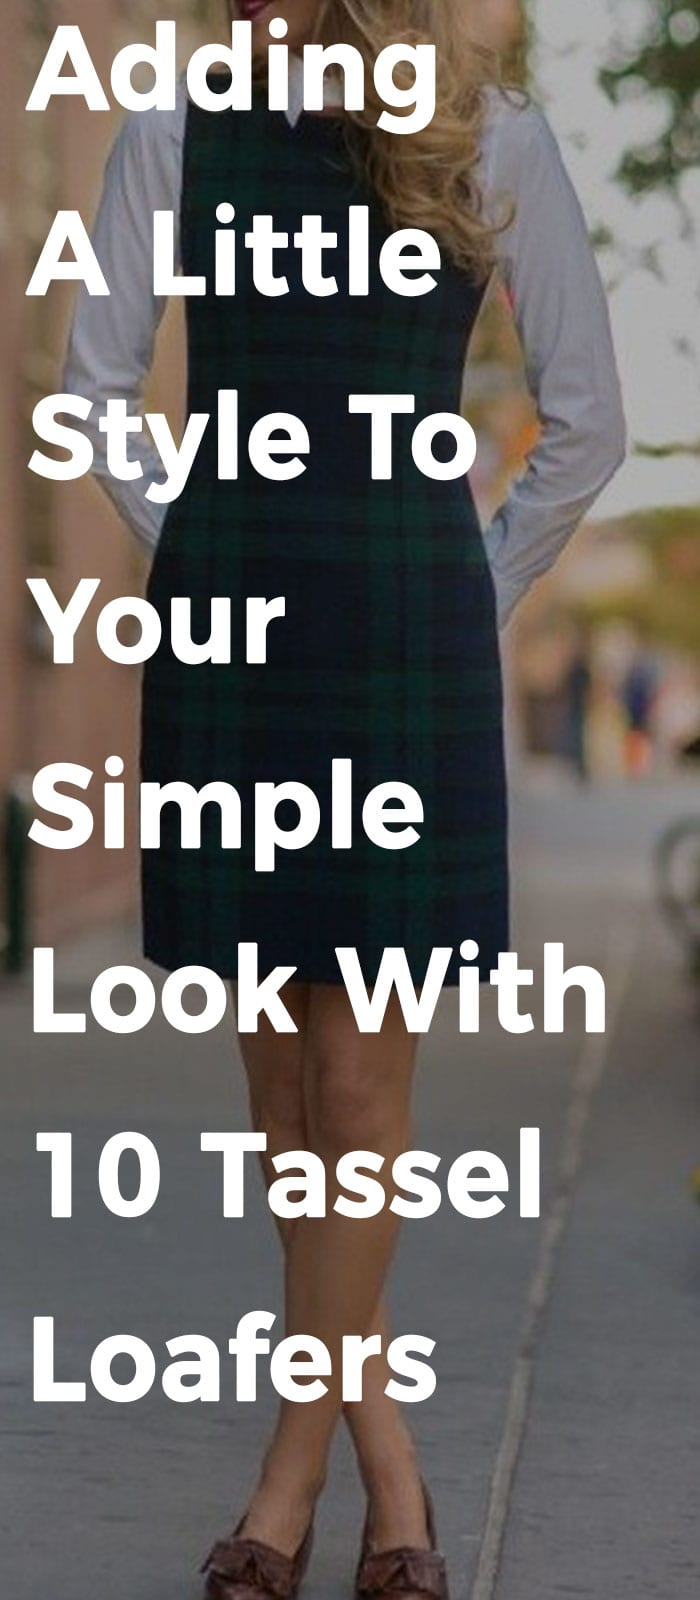 Adding A Little Style To Your Simple Look With 10 Tassel Loafers.